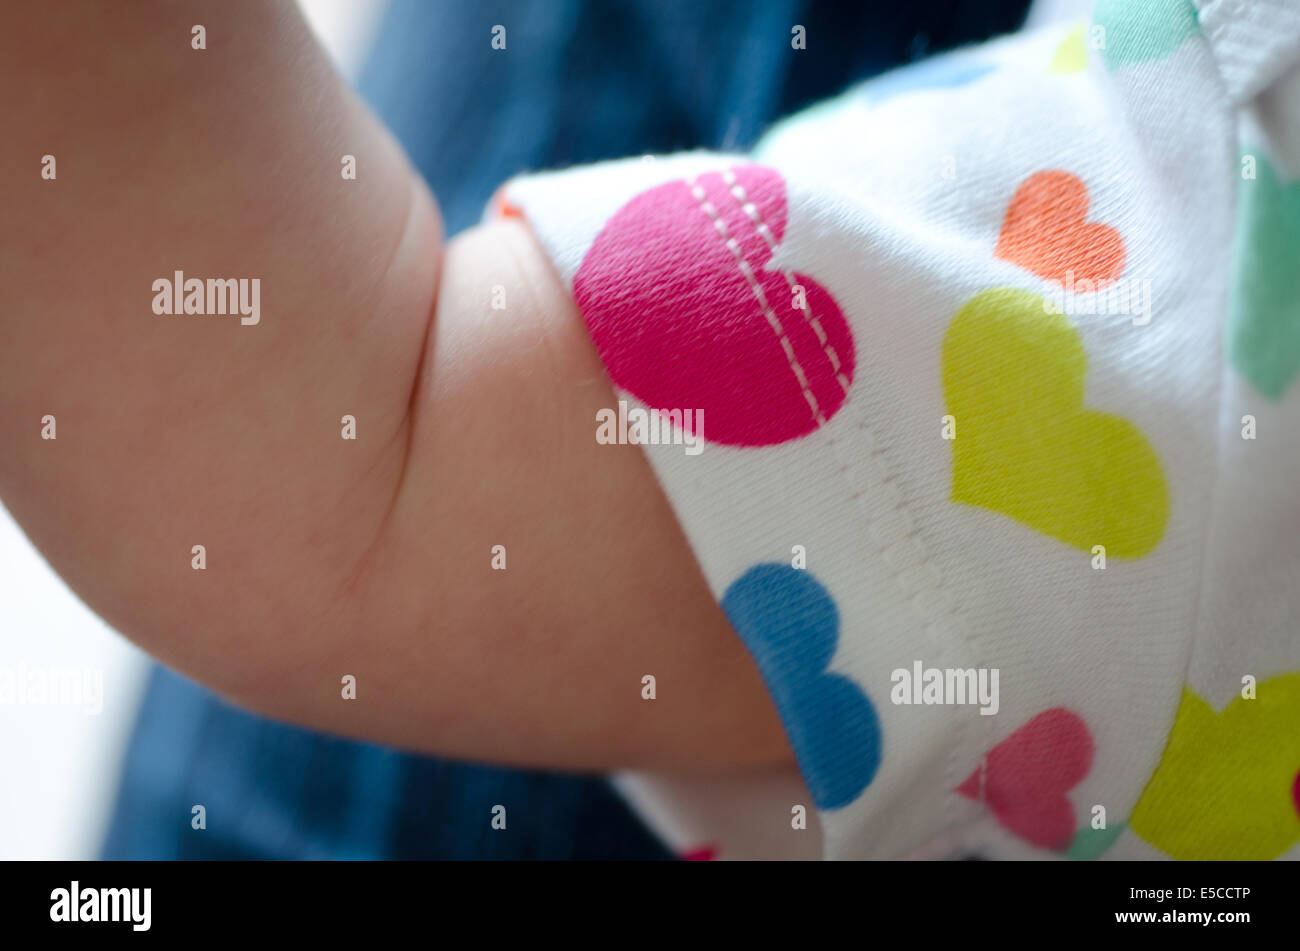 Baby girl three weeks old with arm biceps posed in babygro with heart motif - Stock Image